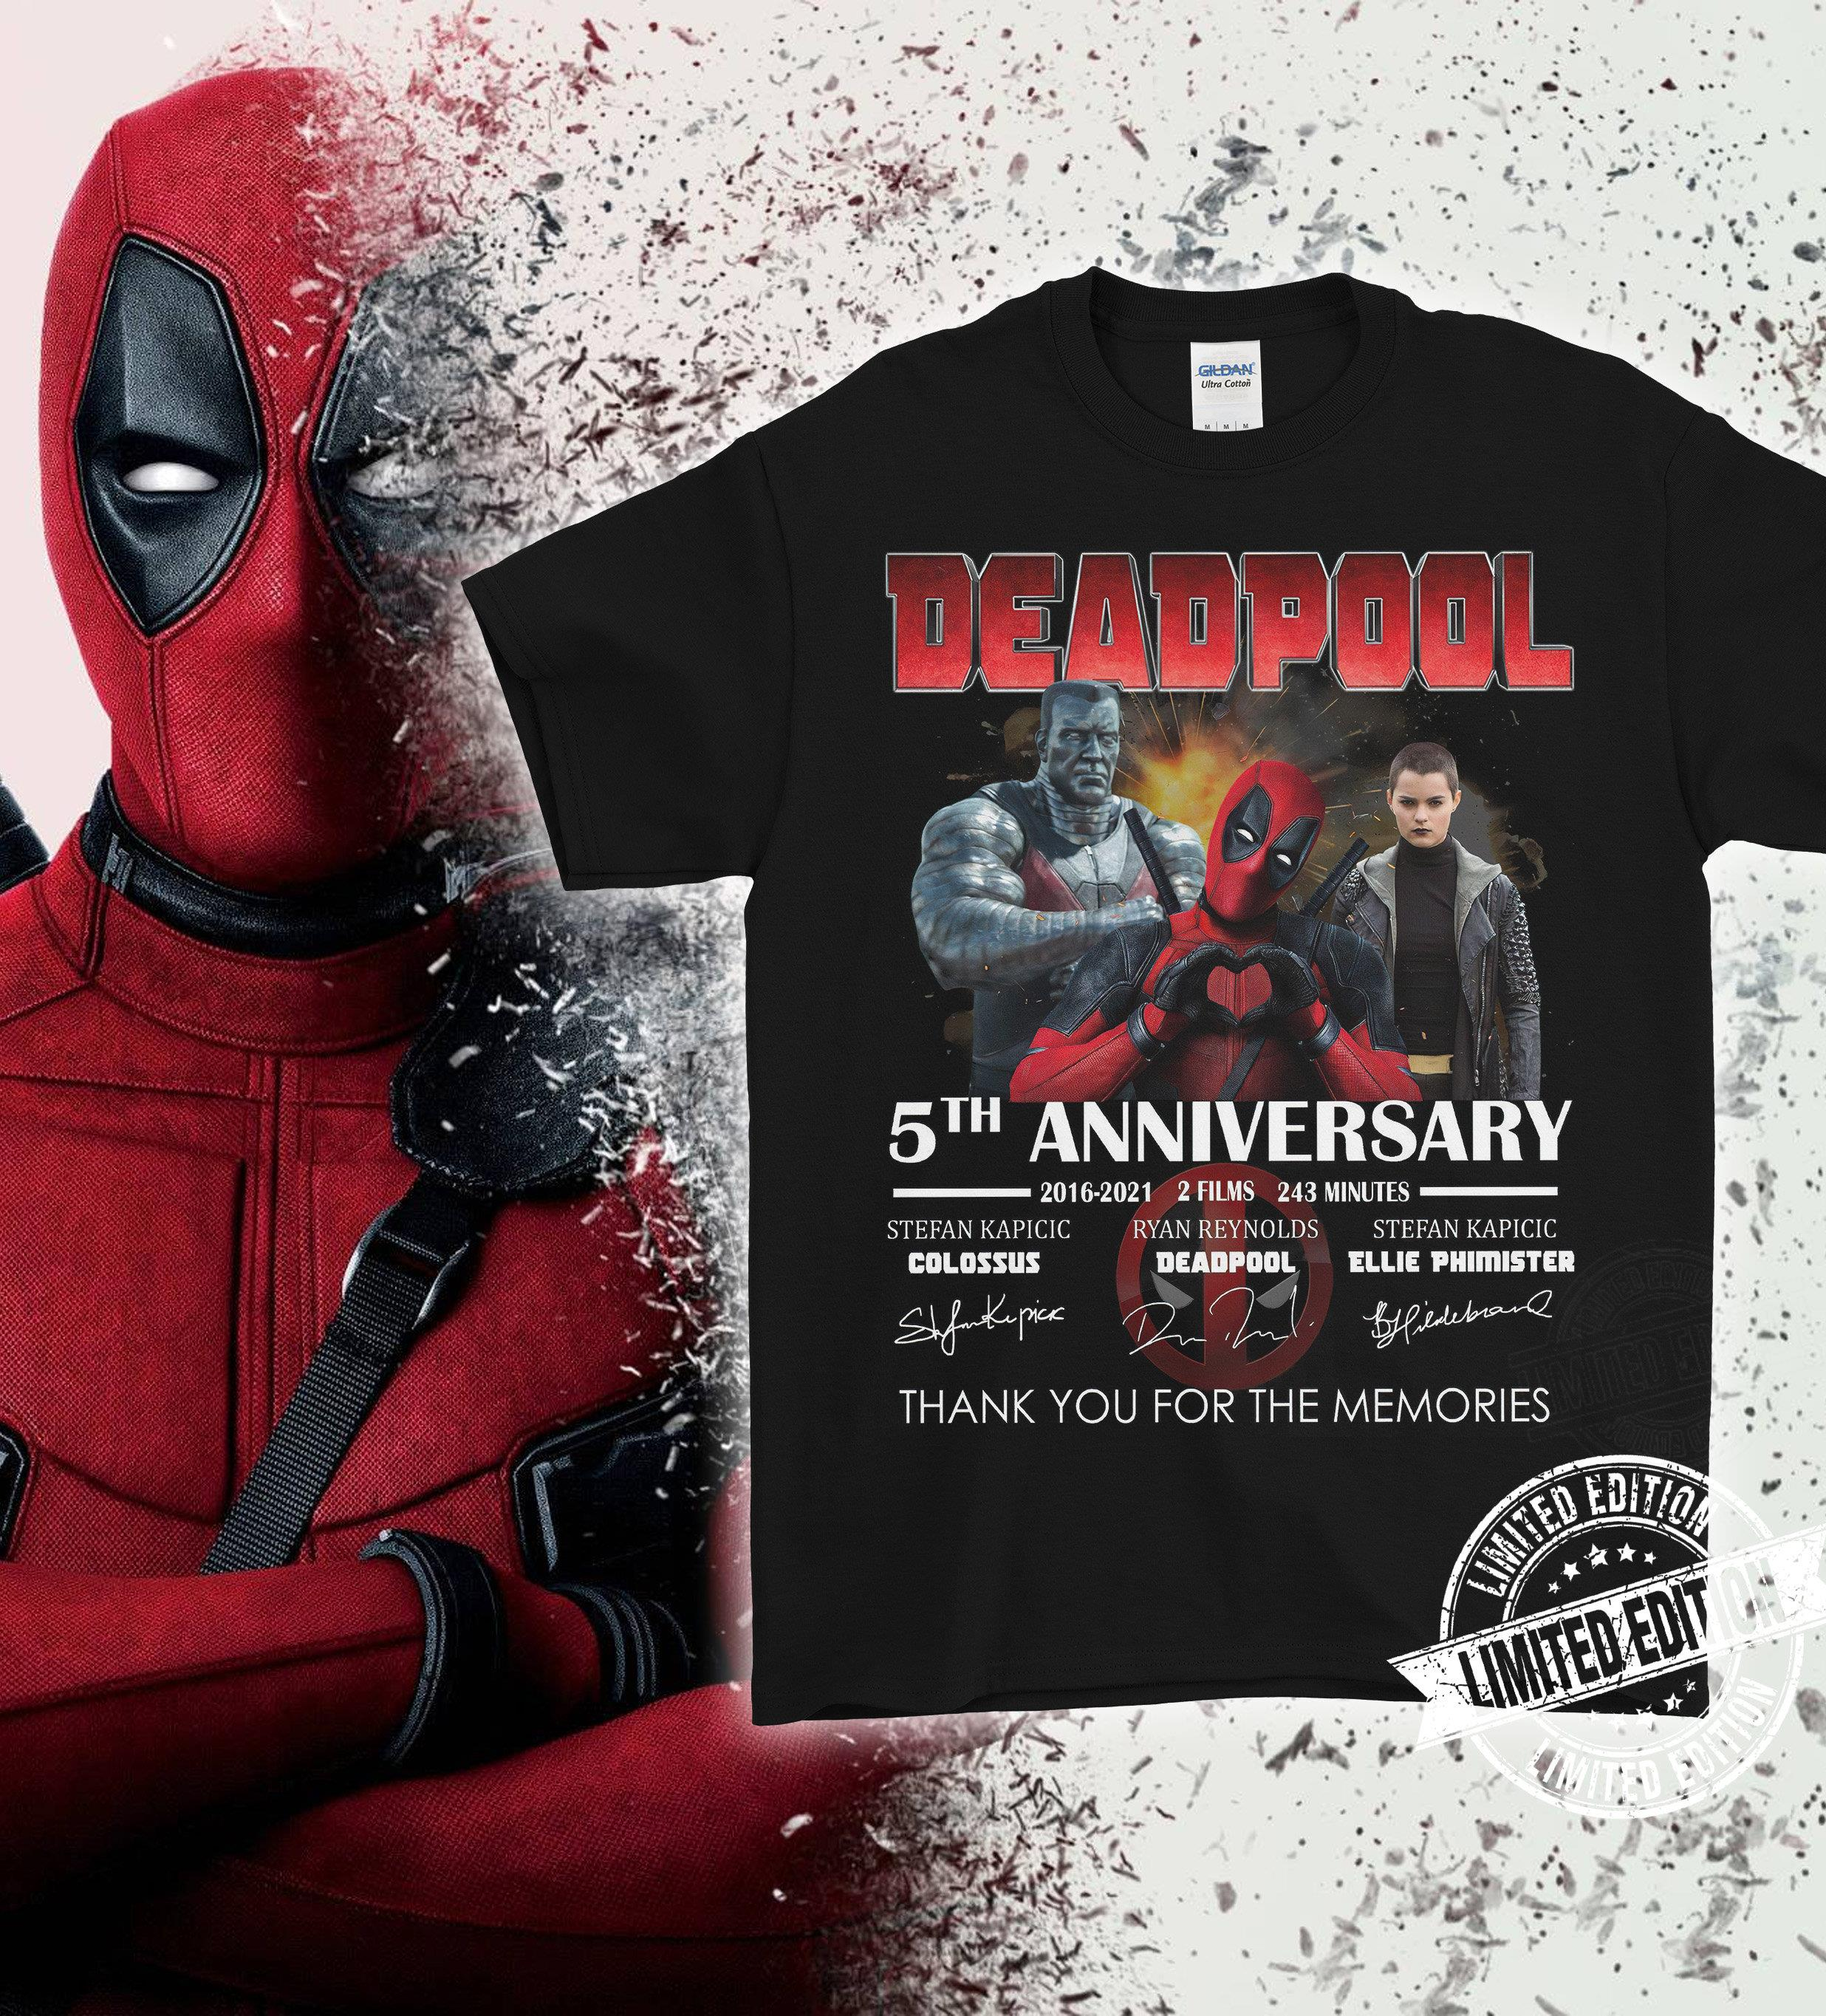 Deadpool 5th Anniversary Signature And Thank You For The Memories Shirt